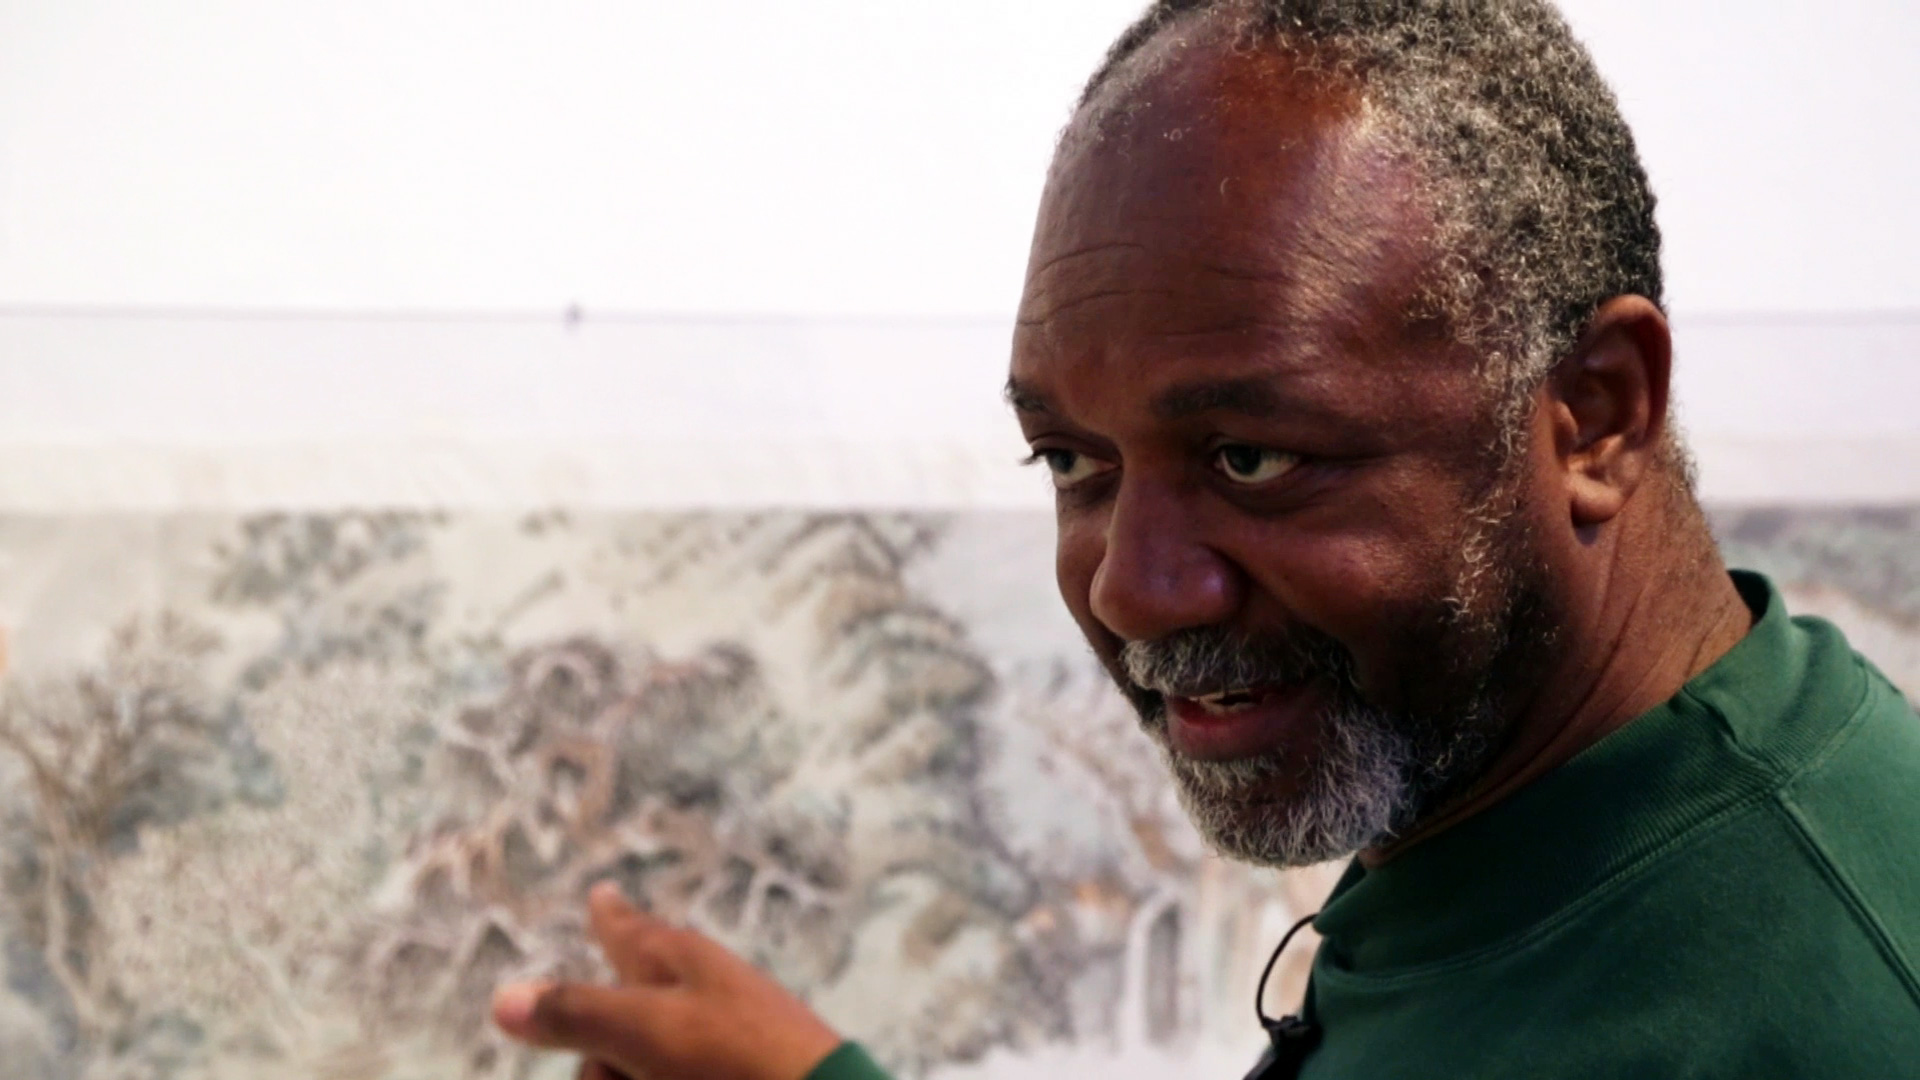 Kerry James Marshall discussing the work of Yun-Fei Ji at the Prospect.3 biennial in New Orleans, Louisiana. Production still from the series ART21 Artist ... - a2a-nola-still-203